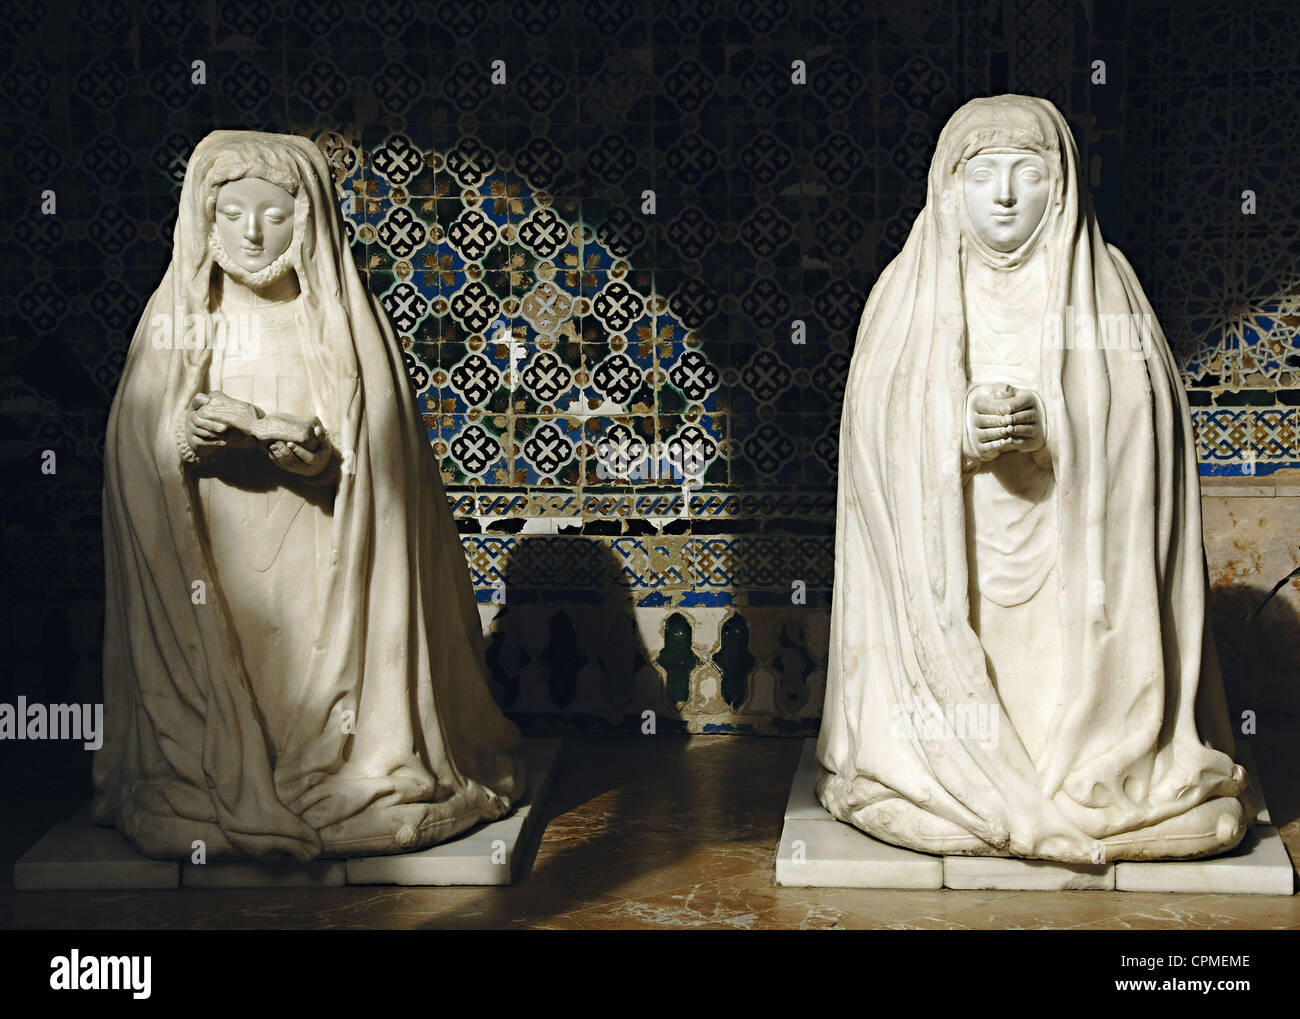 Spain. Andalusia. Seville. Monastery of Our Lady of the Caves. Beatriz Portocarrero and Leonor Cabeza de Vaca. - Stock Image